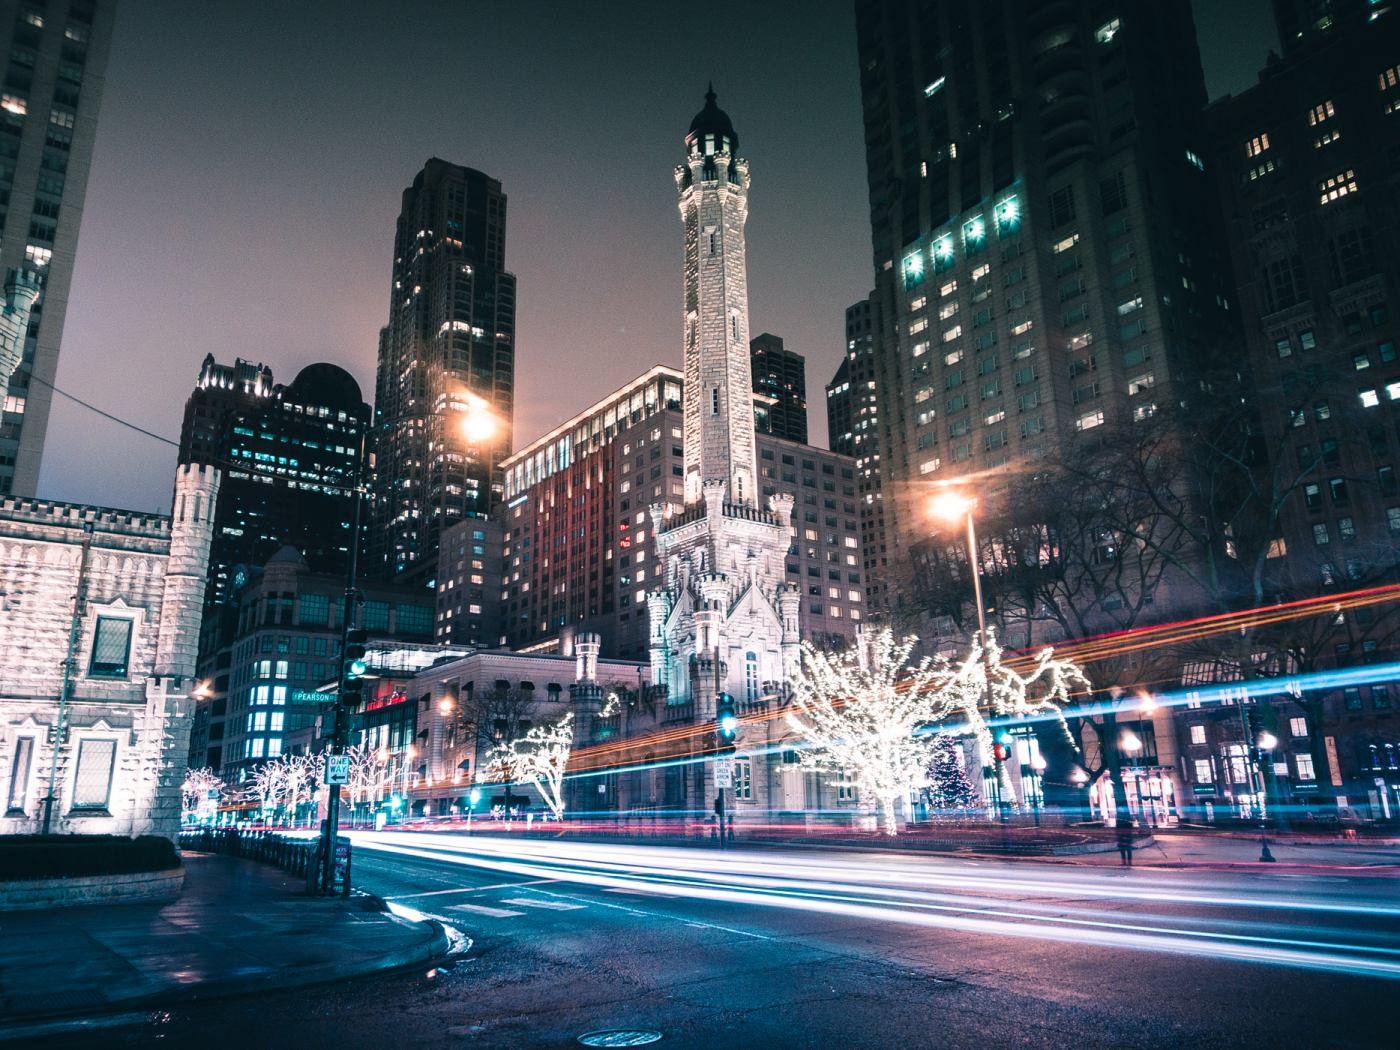 Chicago Water Tower. ASUS ZenFone 4 Pro. 10s, f/1.7, ISO 100